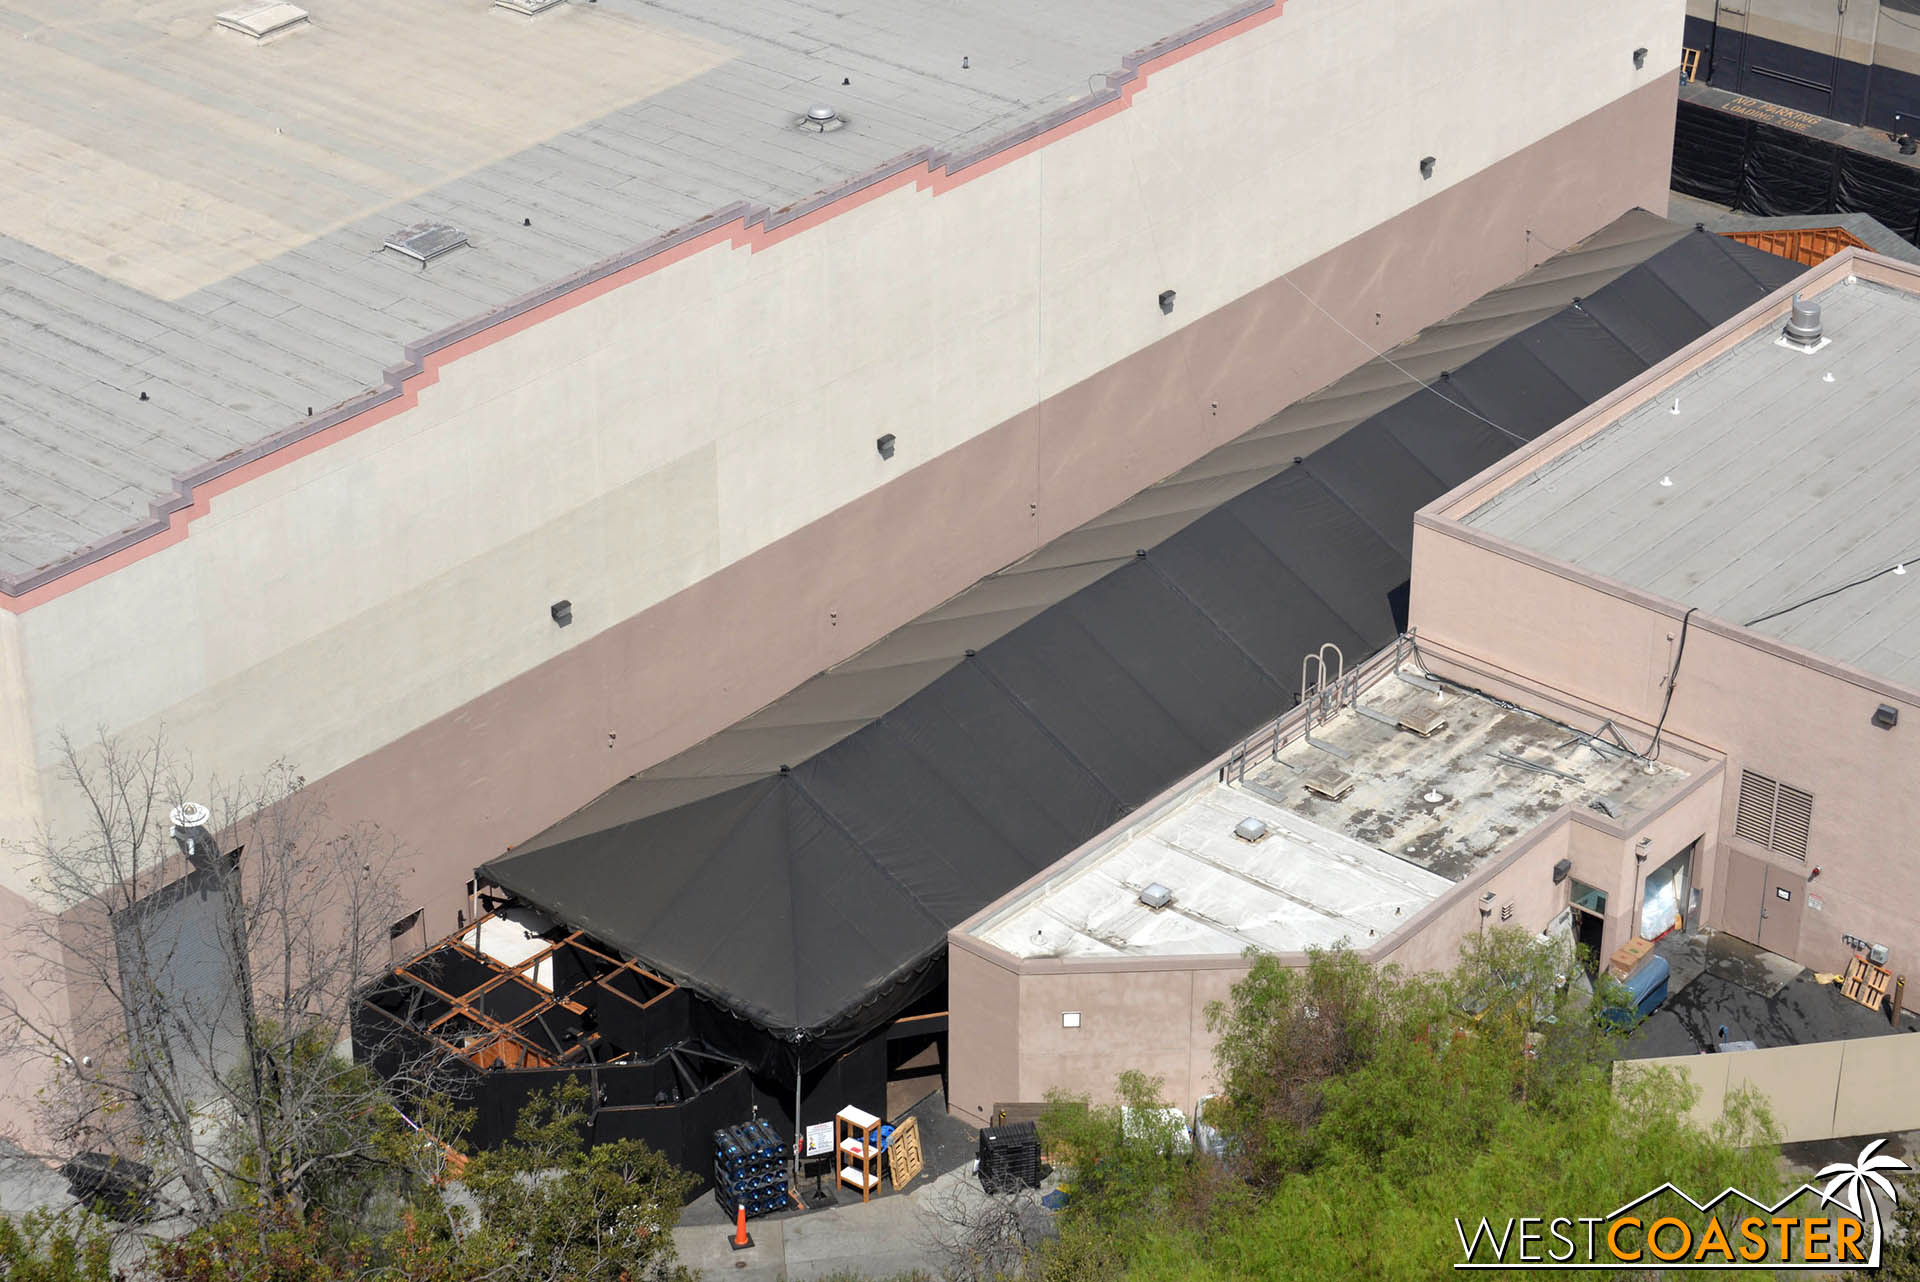 Lets look down at The Mummy maze location, one of traditional two lower lot maze locations (Jurassic Park being the other, but since JP is going down, that maze is being moved to a nearby soundstage… strange thing, sorta…).